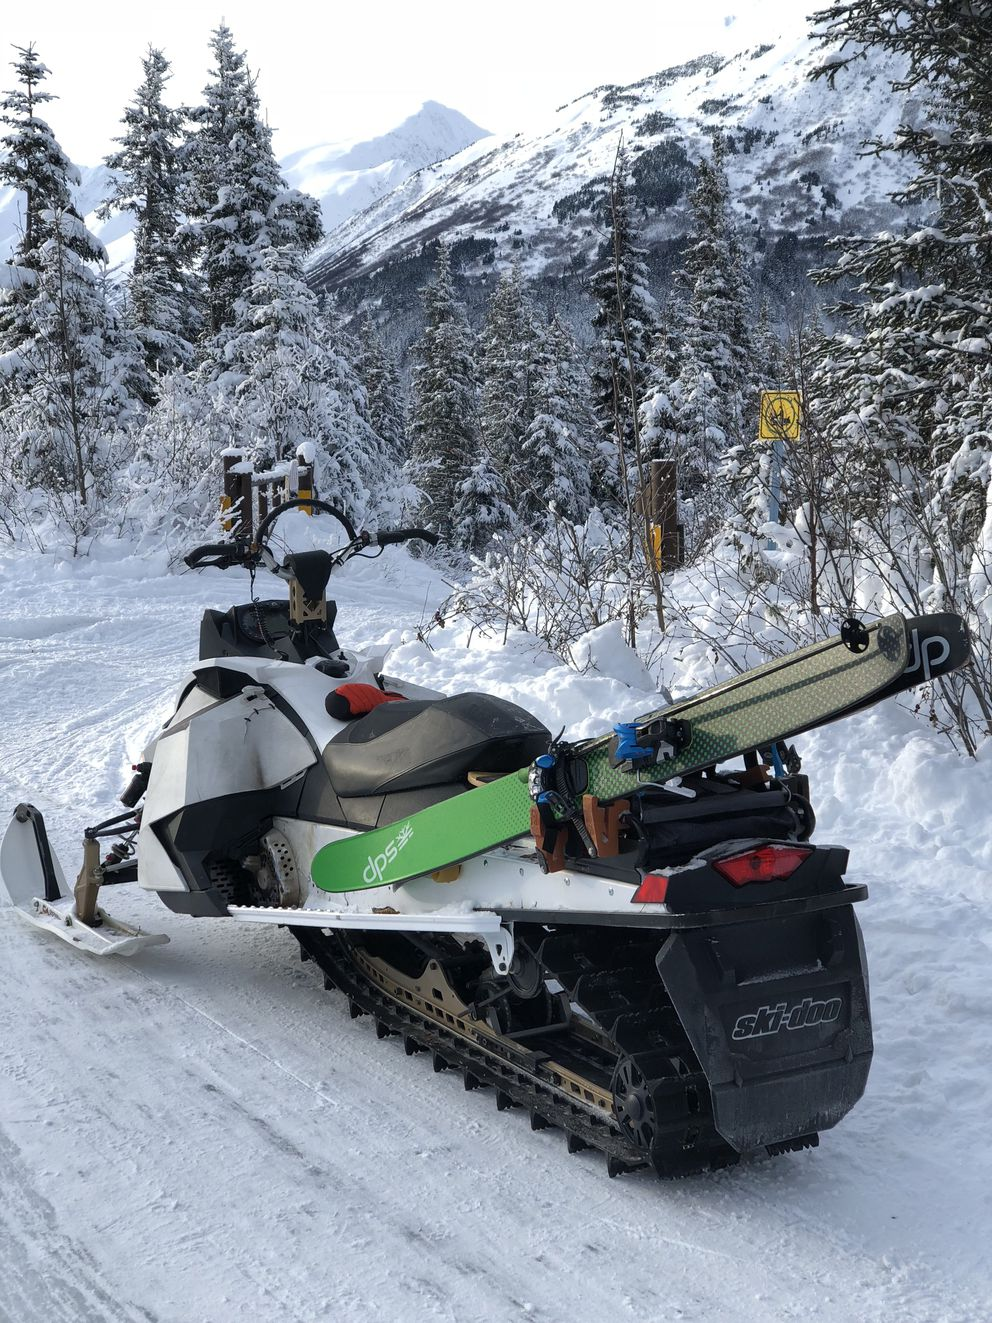 Brett and Rory Marenco mount their skis on snowmachines to access the backcountry. (Courtesy Brett Marenco)